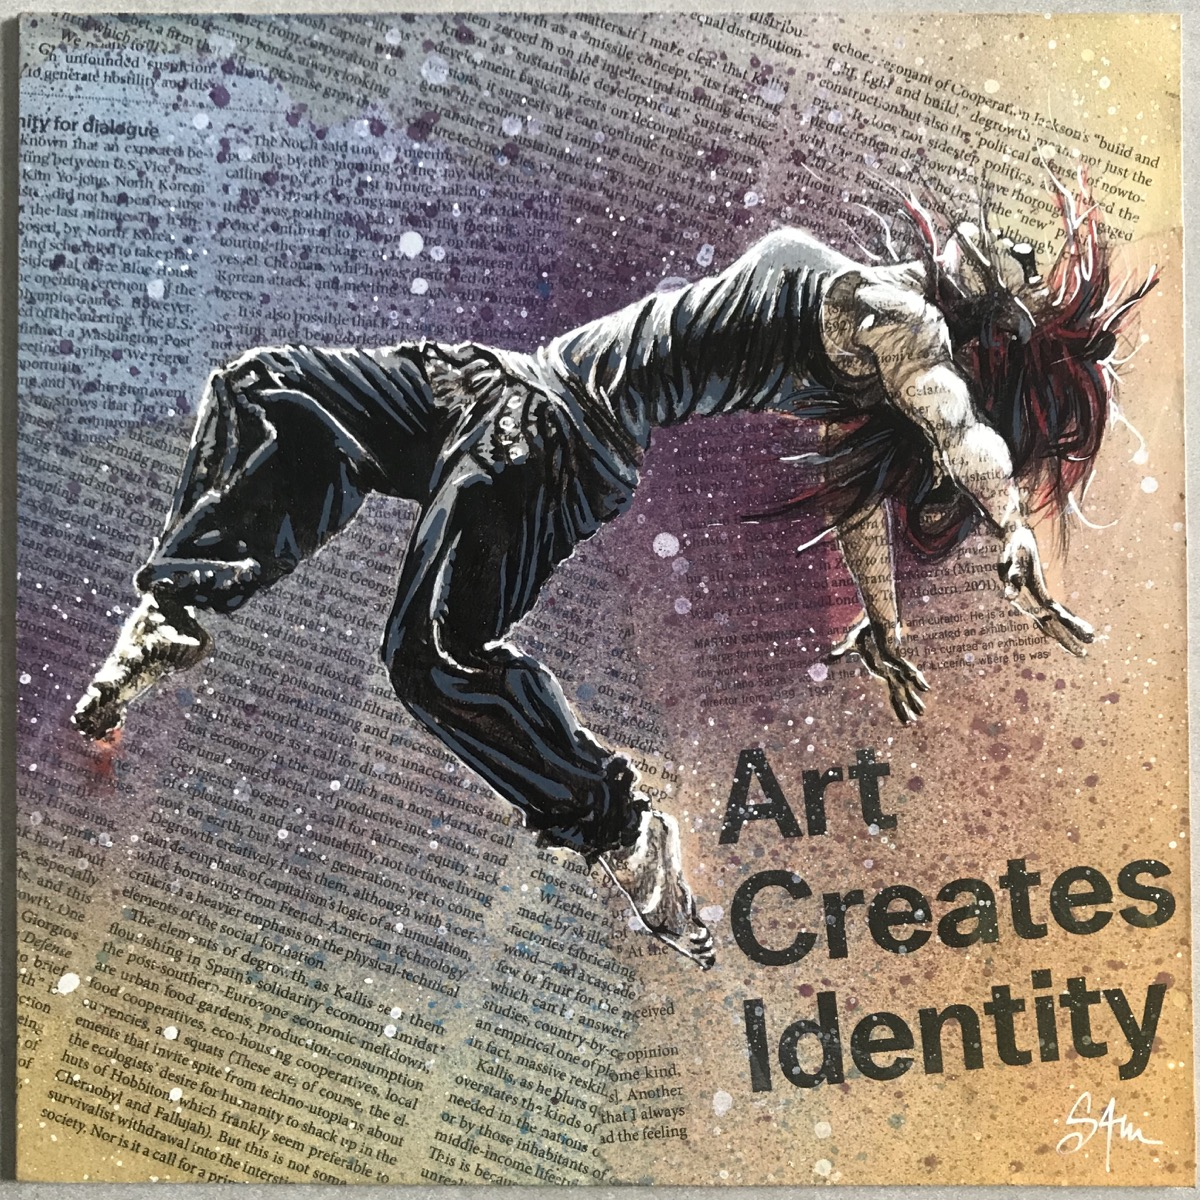 Art creates identity - vendu